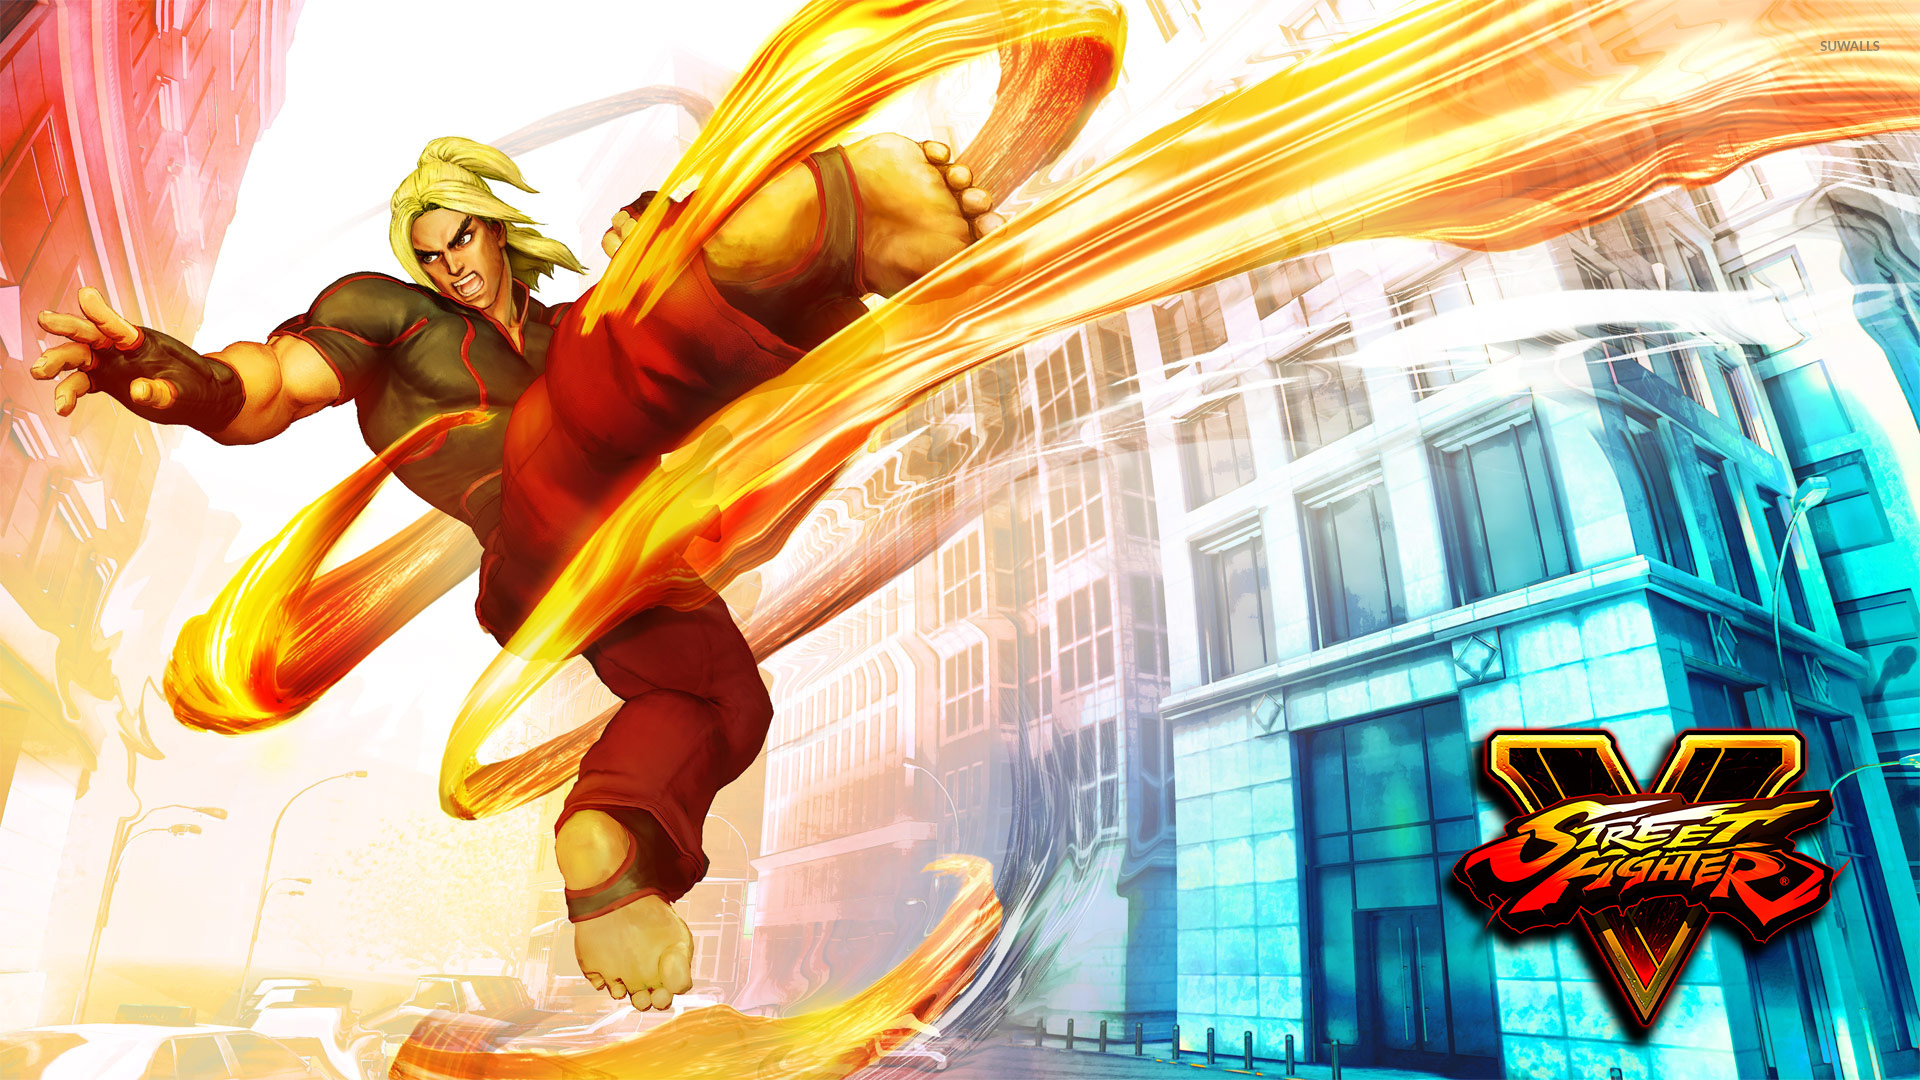 ken street fighter wallpaper - photo #11